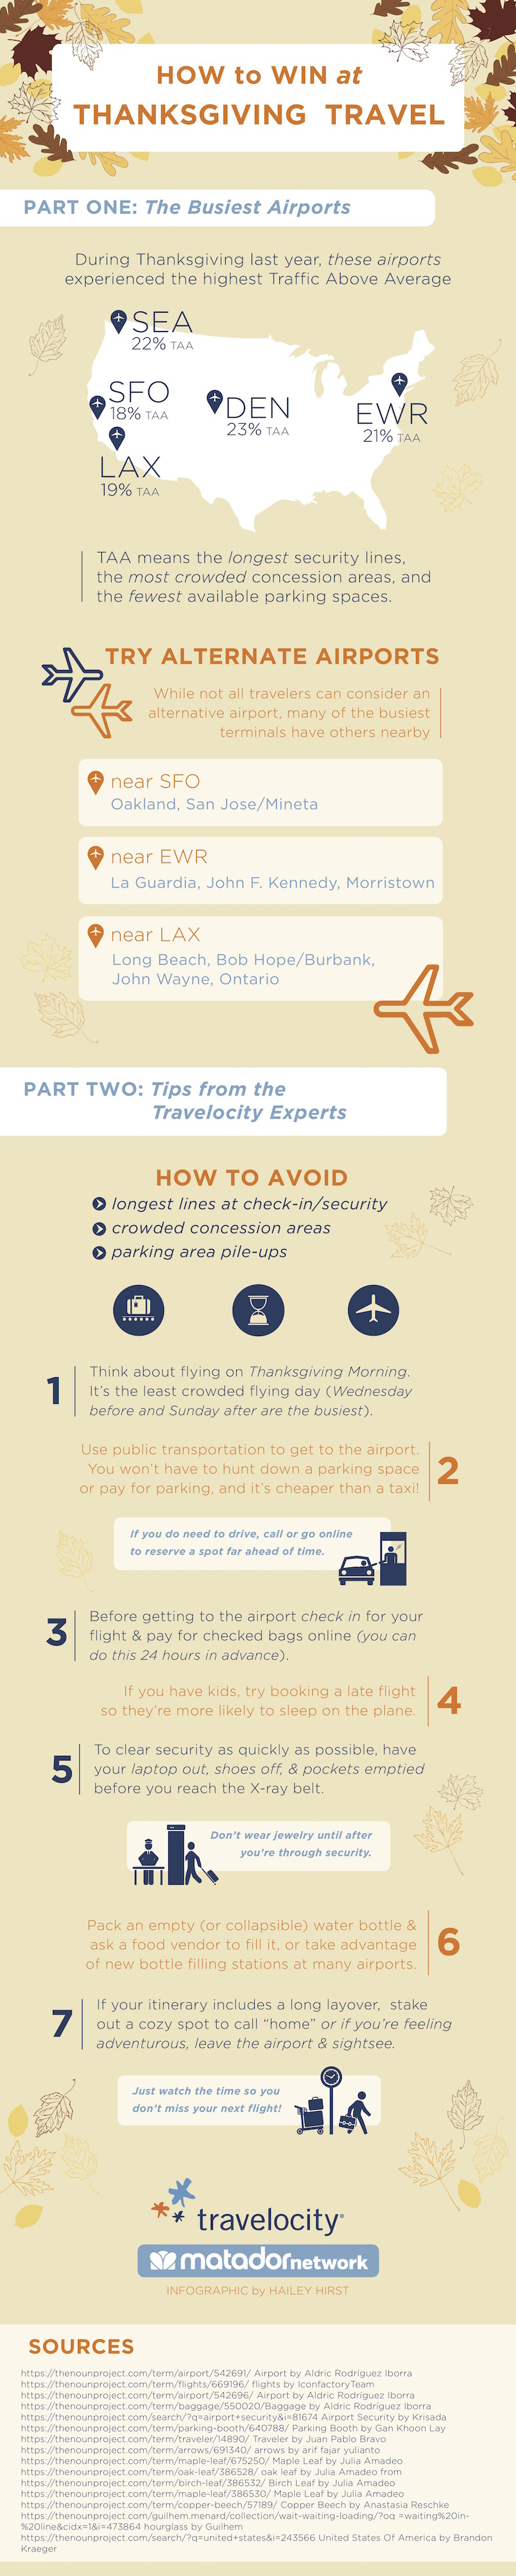 How to Win at Thanksgiving Travel -   Travelocity in partnership with Matador Network